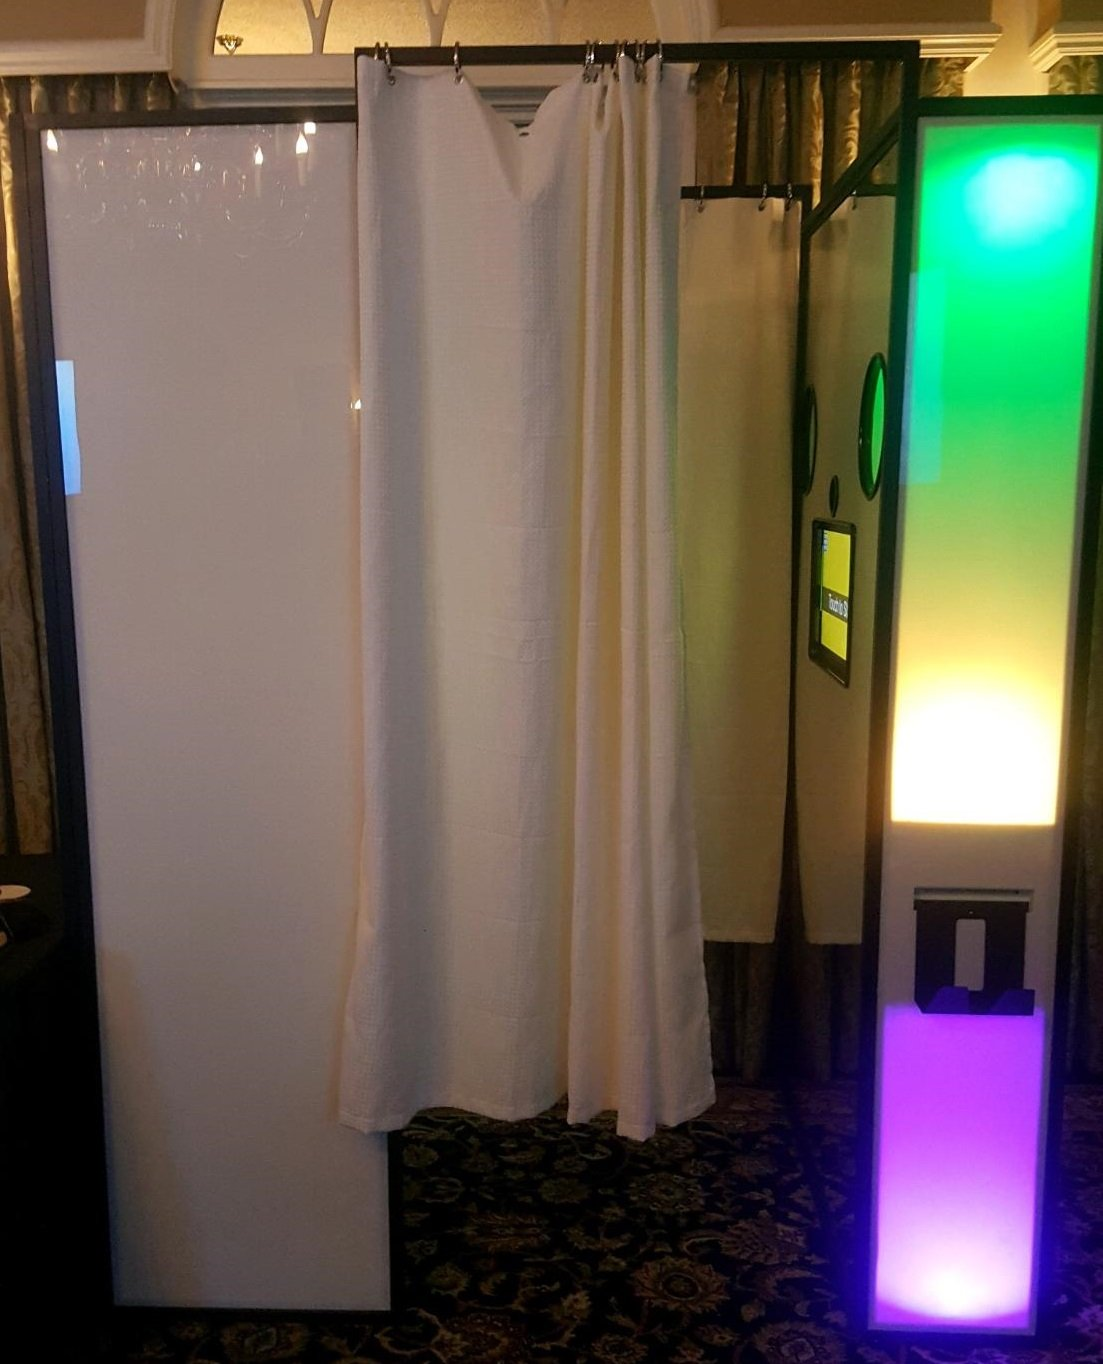 XL Enclosed Photo Booth in New York and New Jersey, Photo Booth, Enclosed Photo Booth, Enclosed Booth, Photo Booth Rental, Wedding, Sweet 16, Bar Mitzvah, Bat Mitzvah, Corporate Party